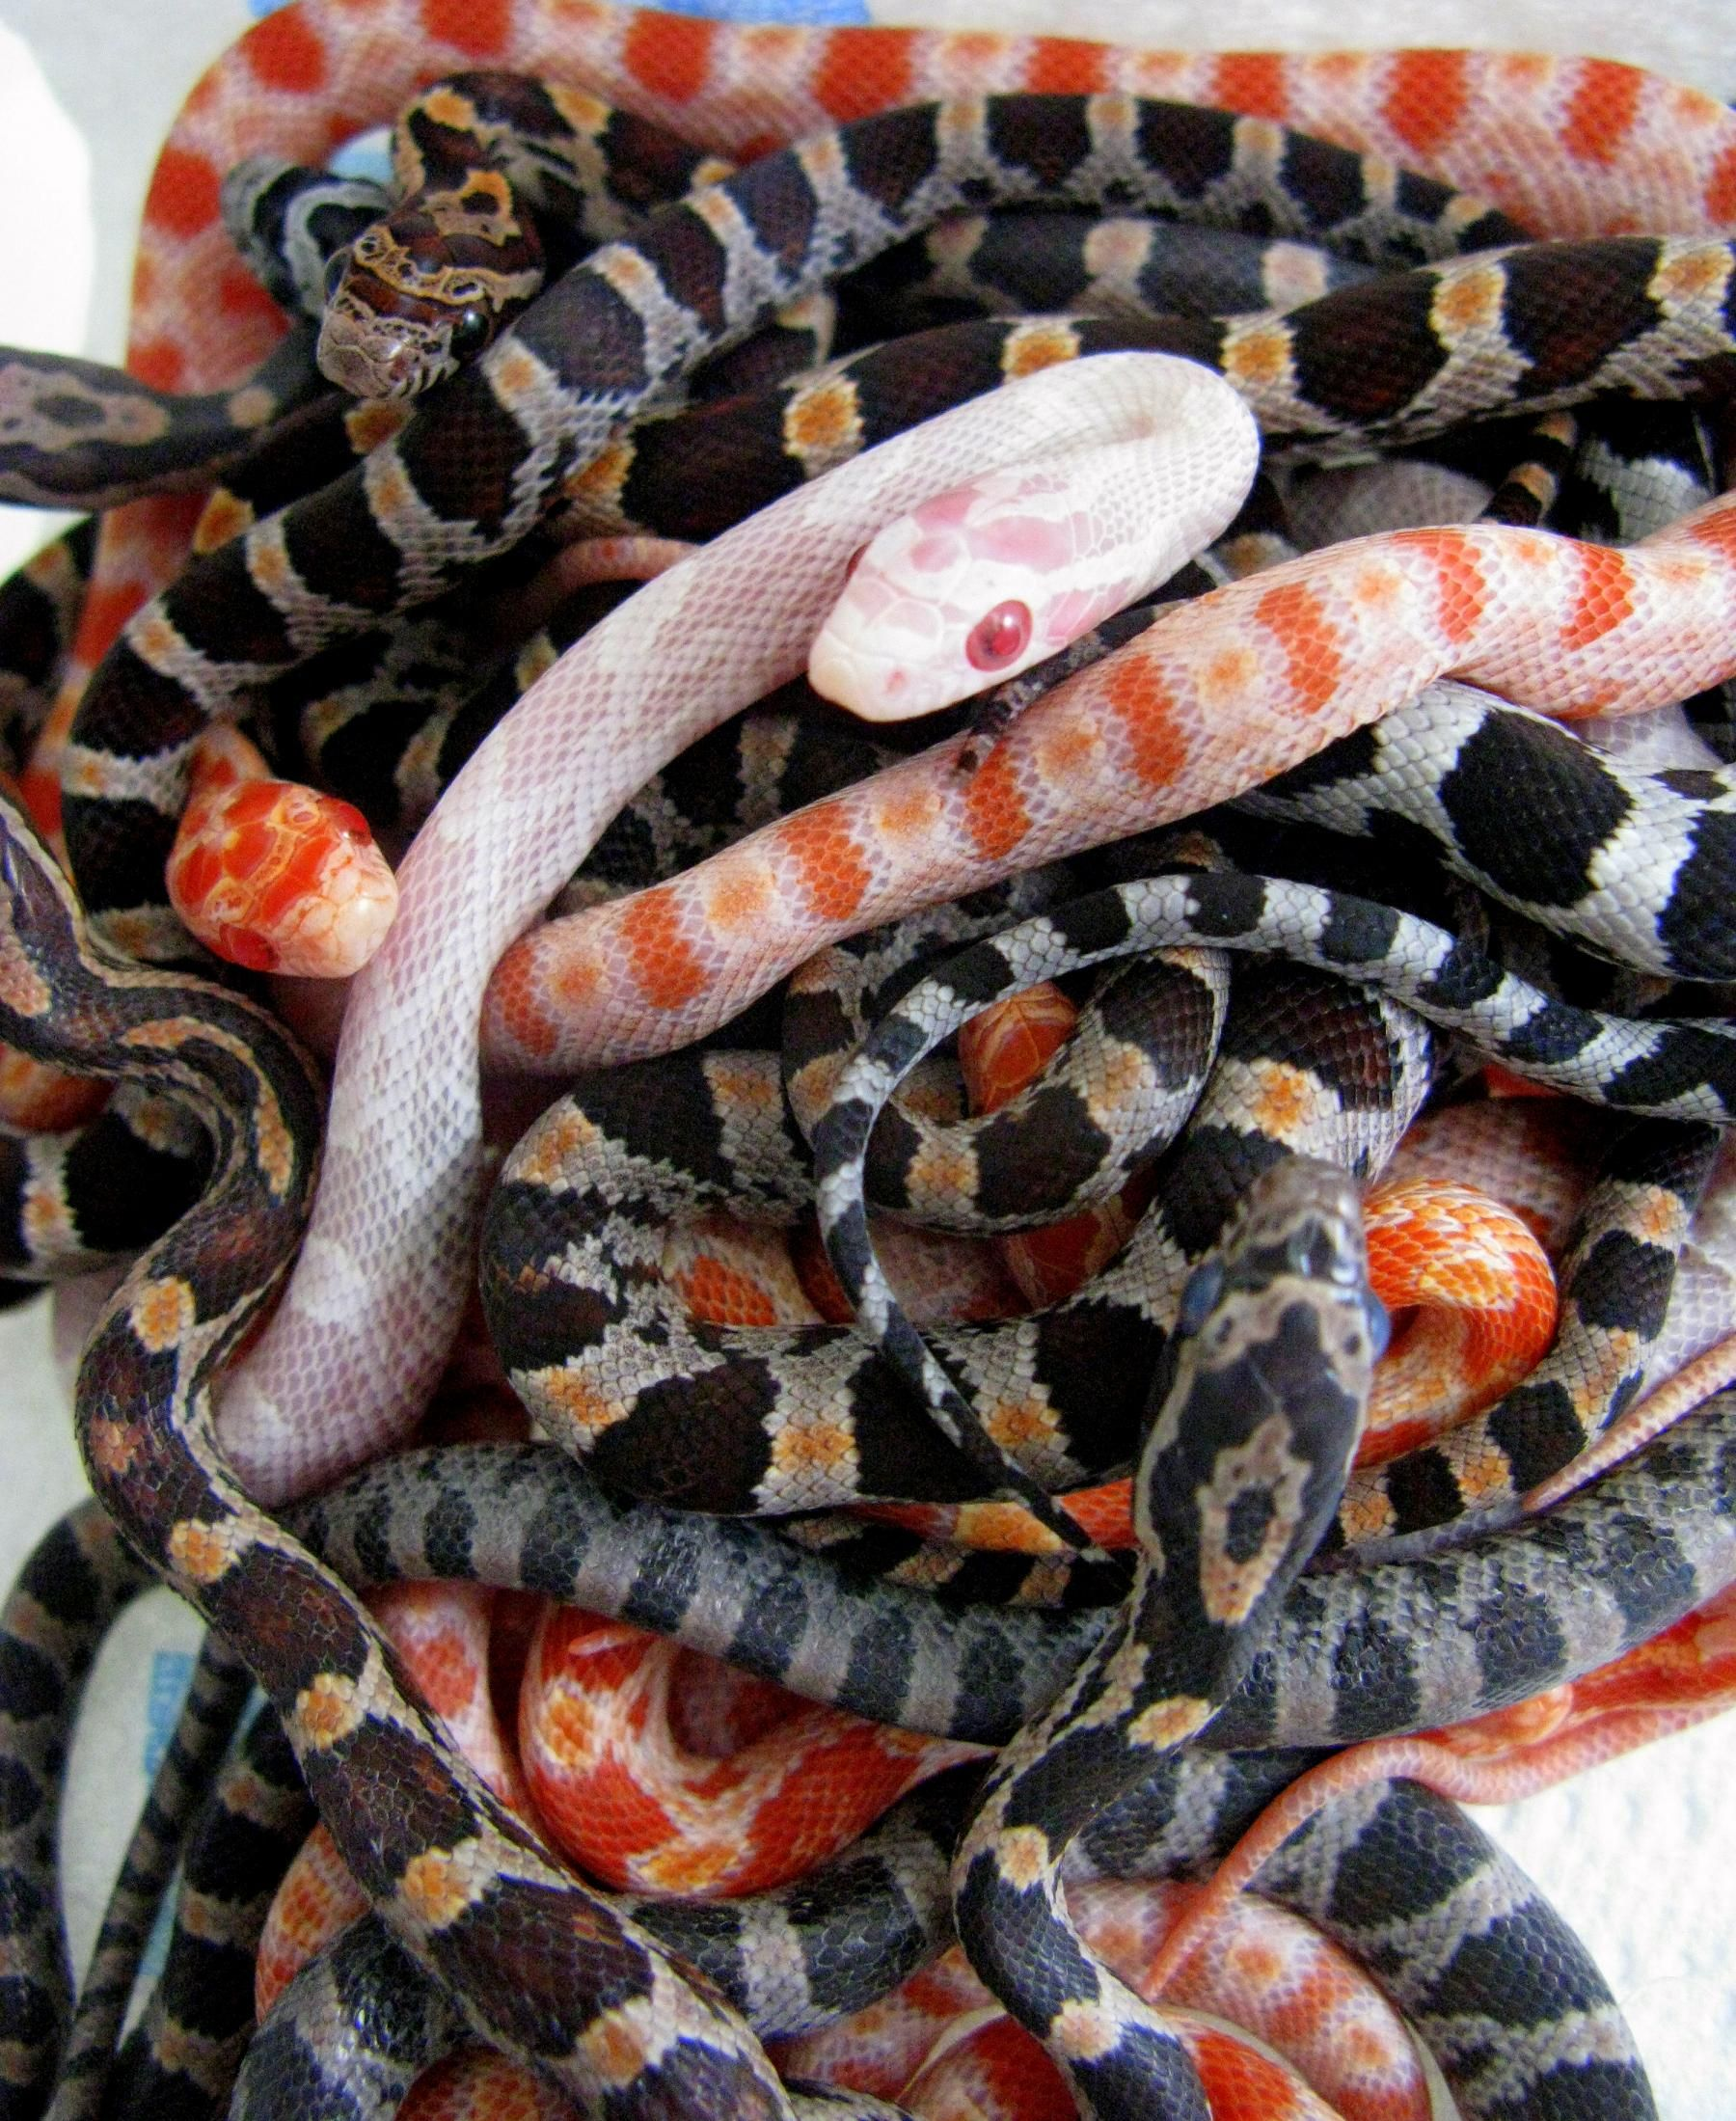 The Best Pet Snake For A Beginner Corn Snake Pet Snake Snake